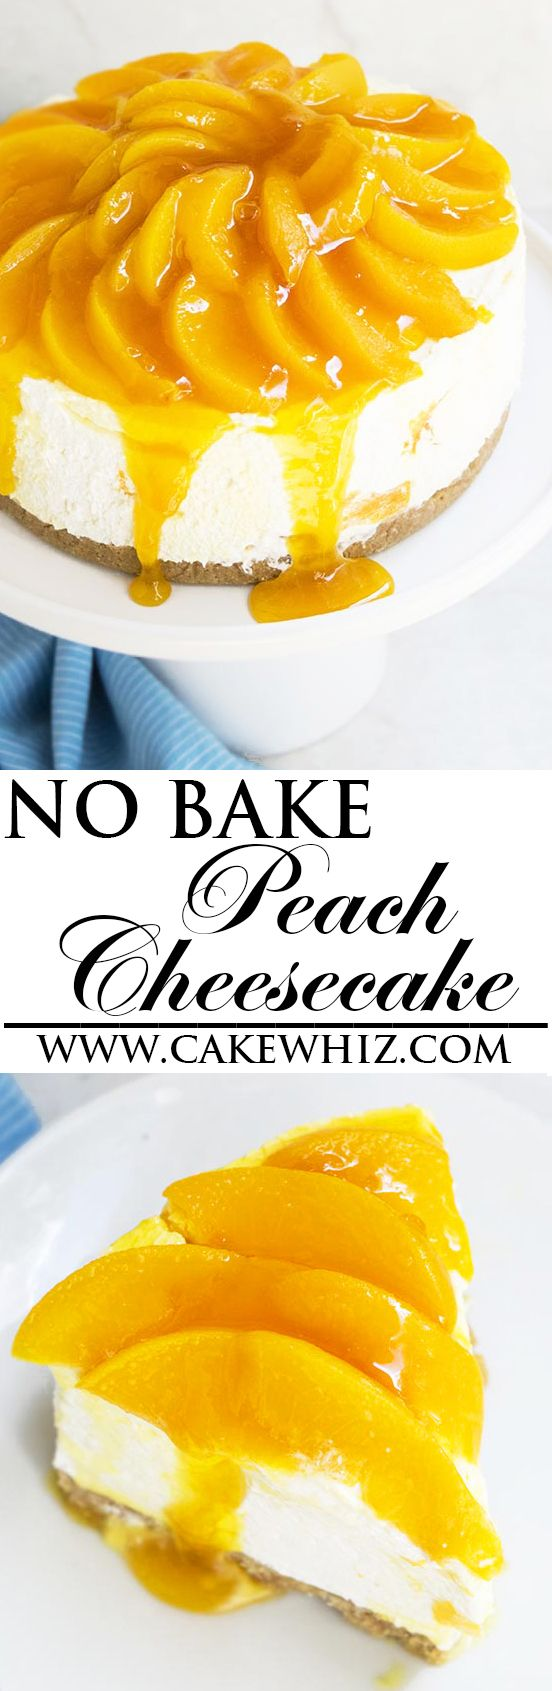 This easy no bake PEACH CHEESECAKE recipe is so rich and creamy. Made with simple ingredients that you already have in your pantry. This peaches and cream cheesecake is the perfect dessert for peach season! From cakewhiz.com: